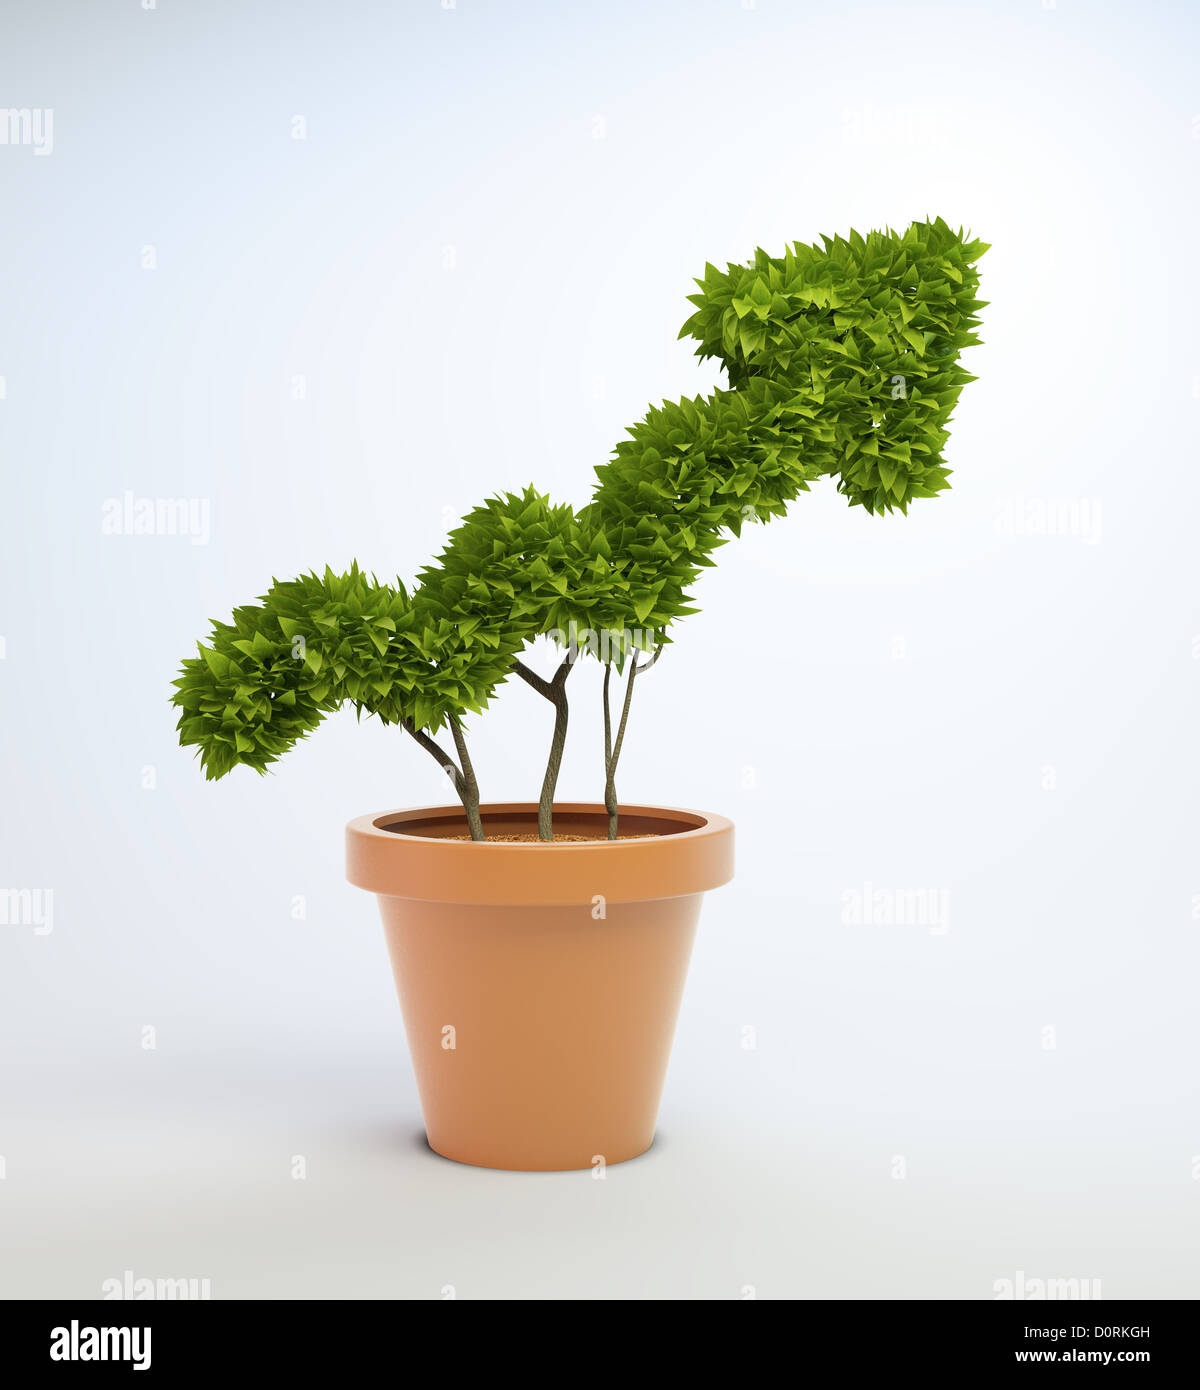 Potplant shaped like a graph - Stock Image